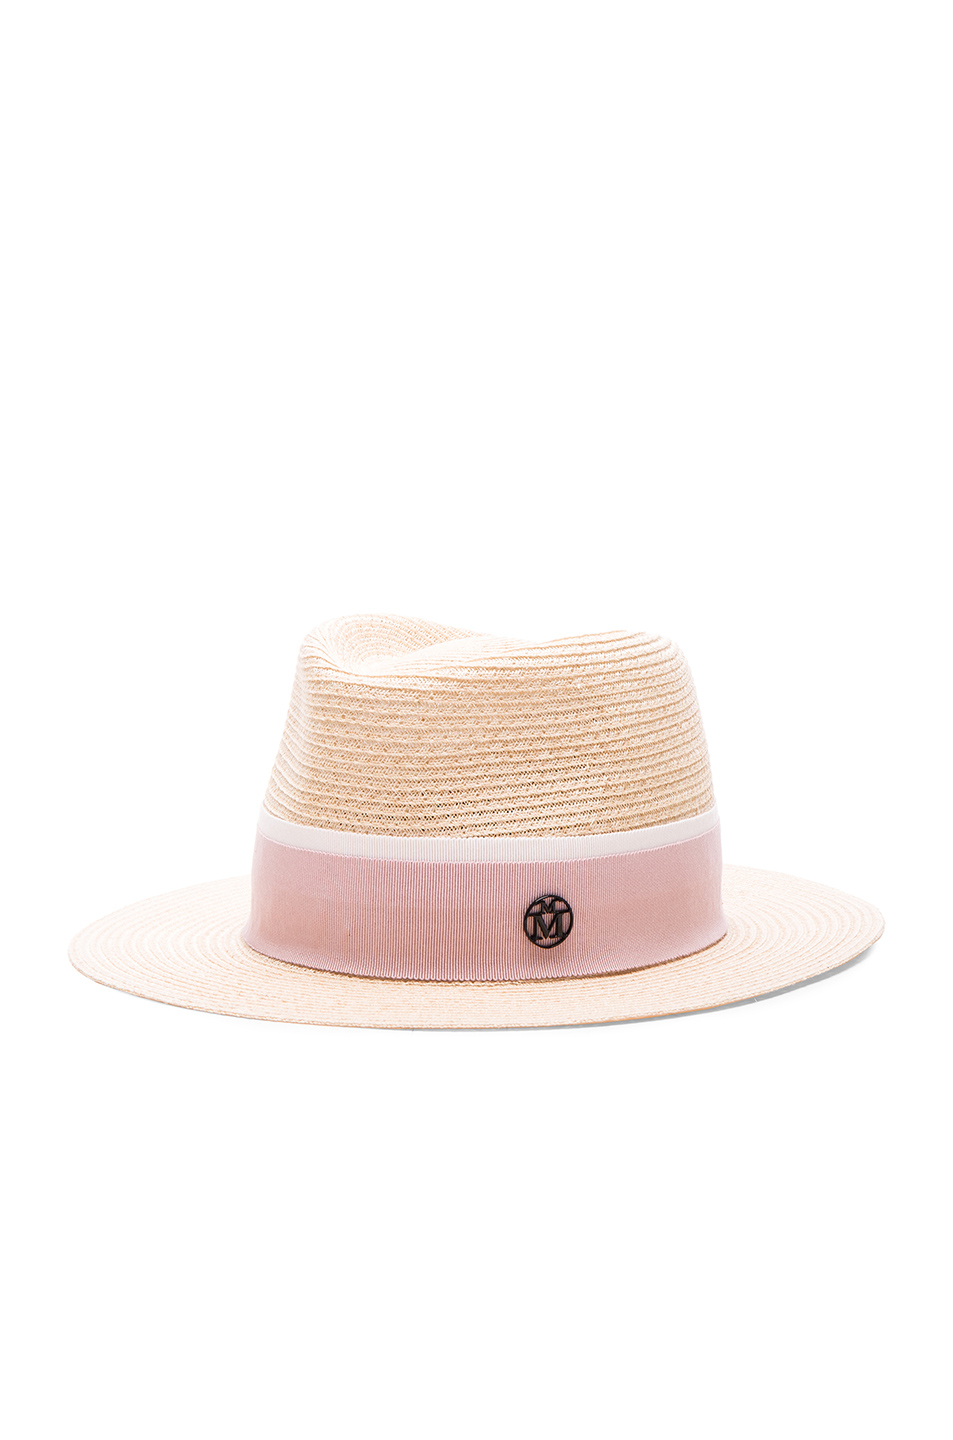 fe97ff1fcd3 Buy Original Maison Michel Andre Hat at Indonesia